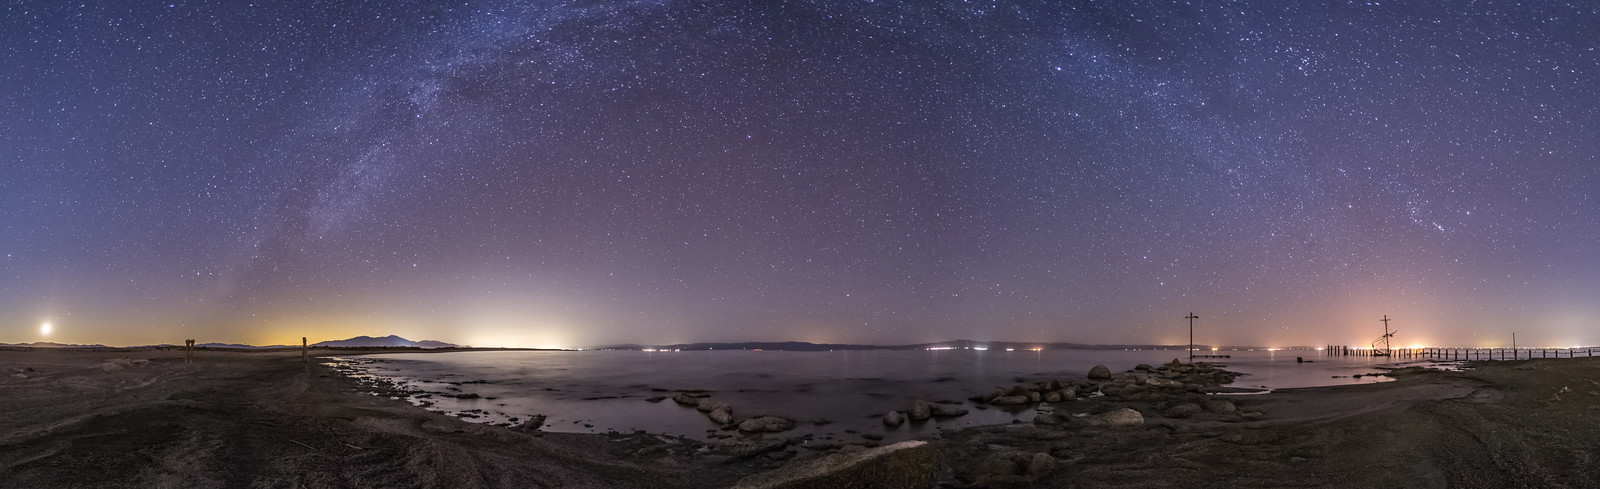 A Night on the Southwestern Shore of the Salton Sea